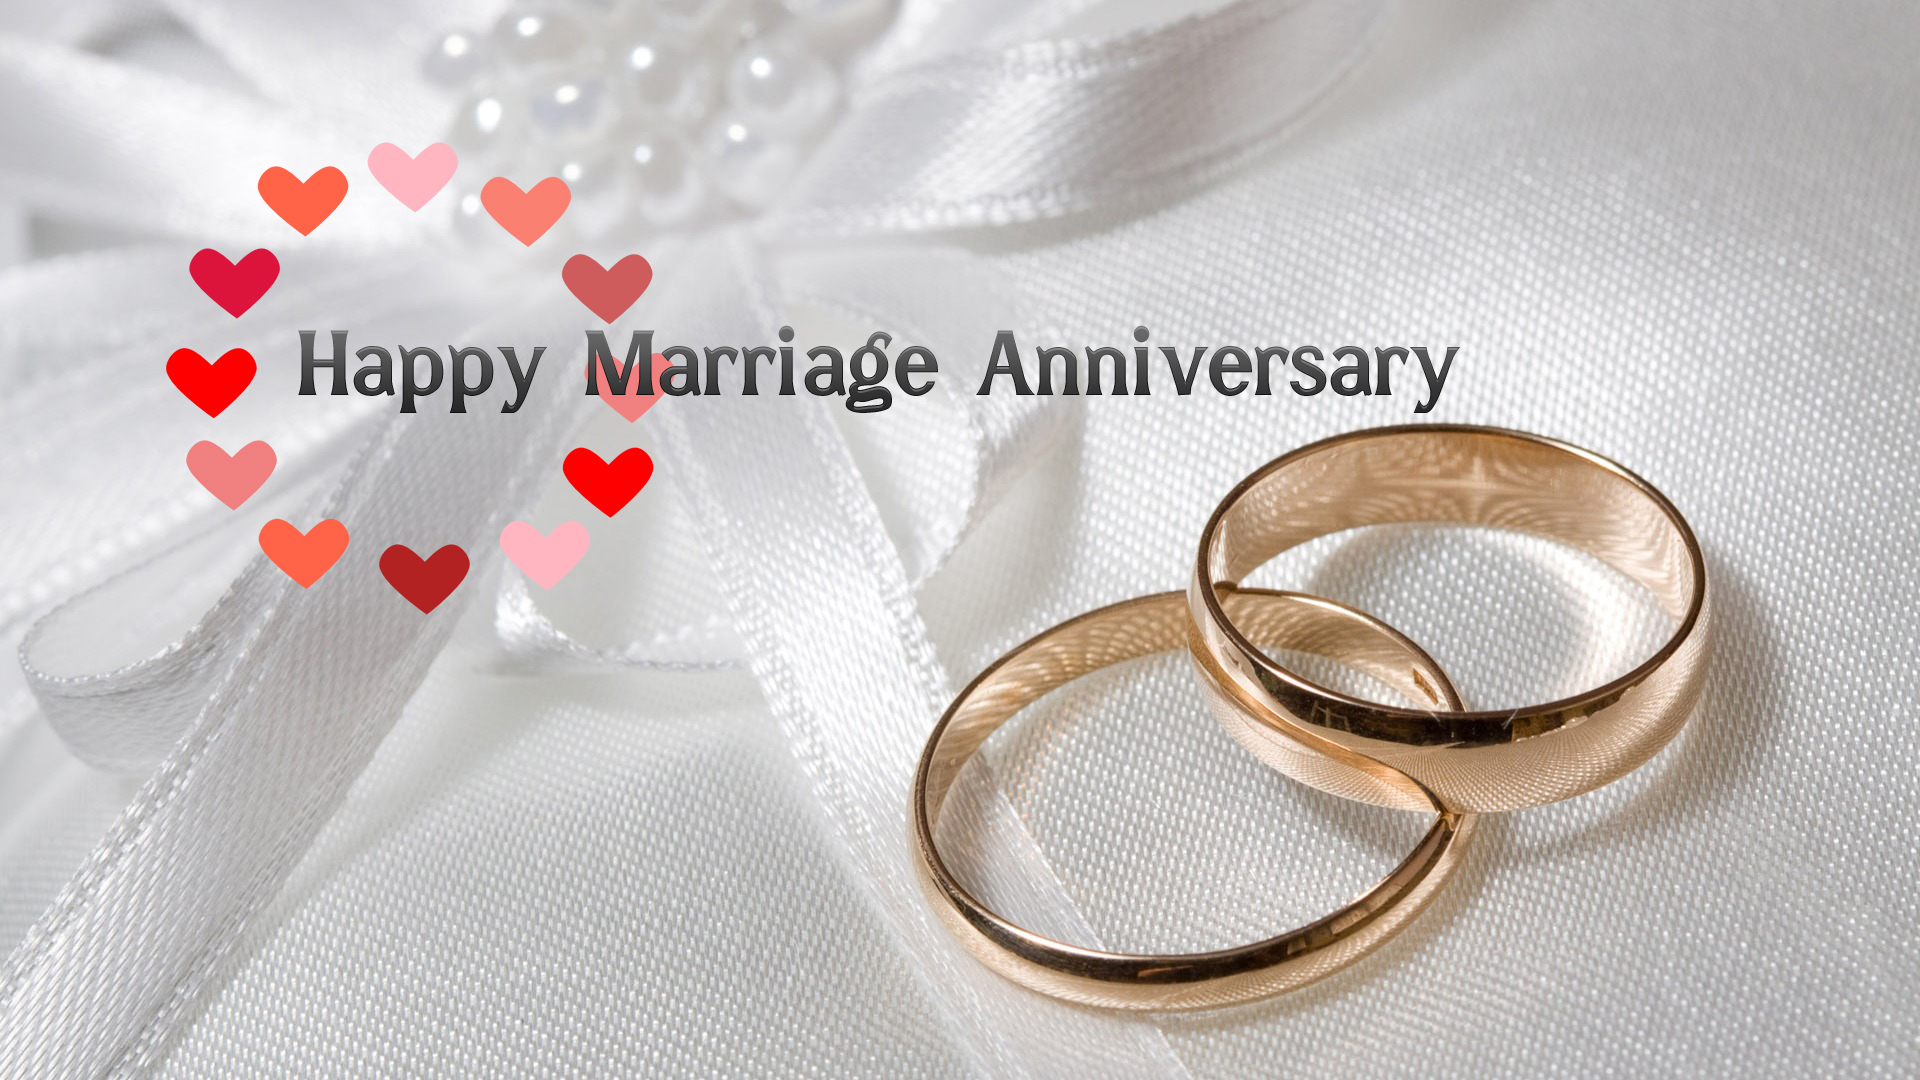 Happy marriage anniversary with ring wallpaper download